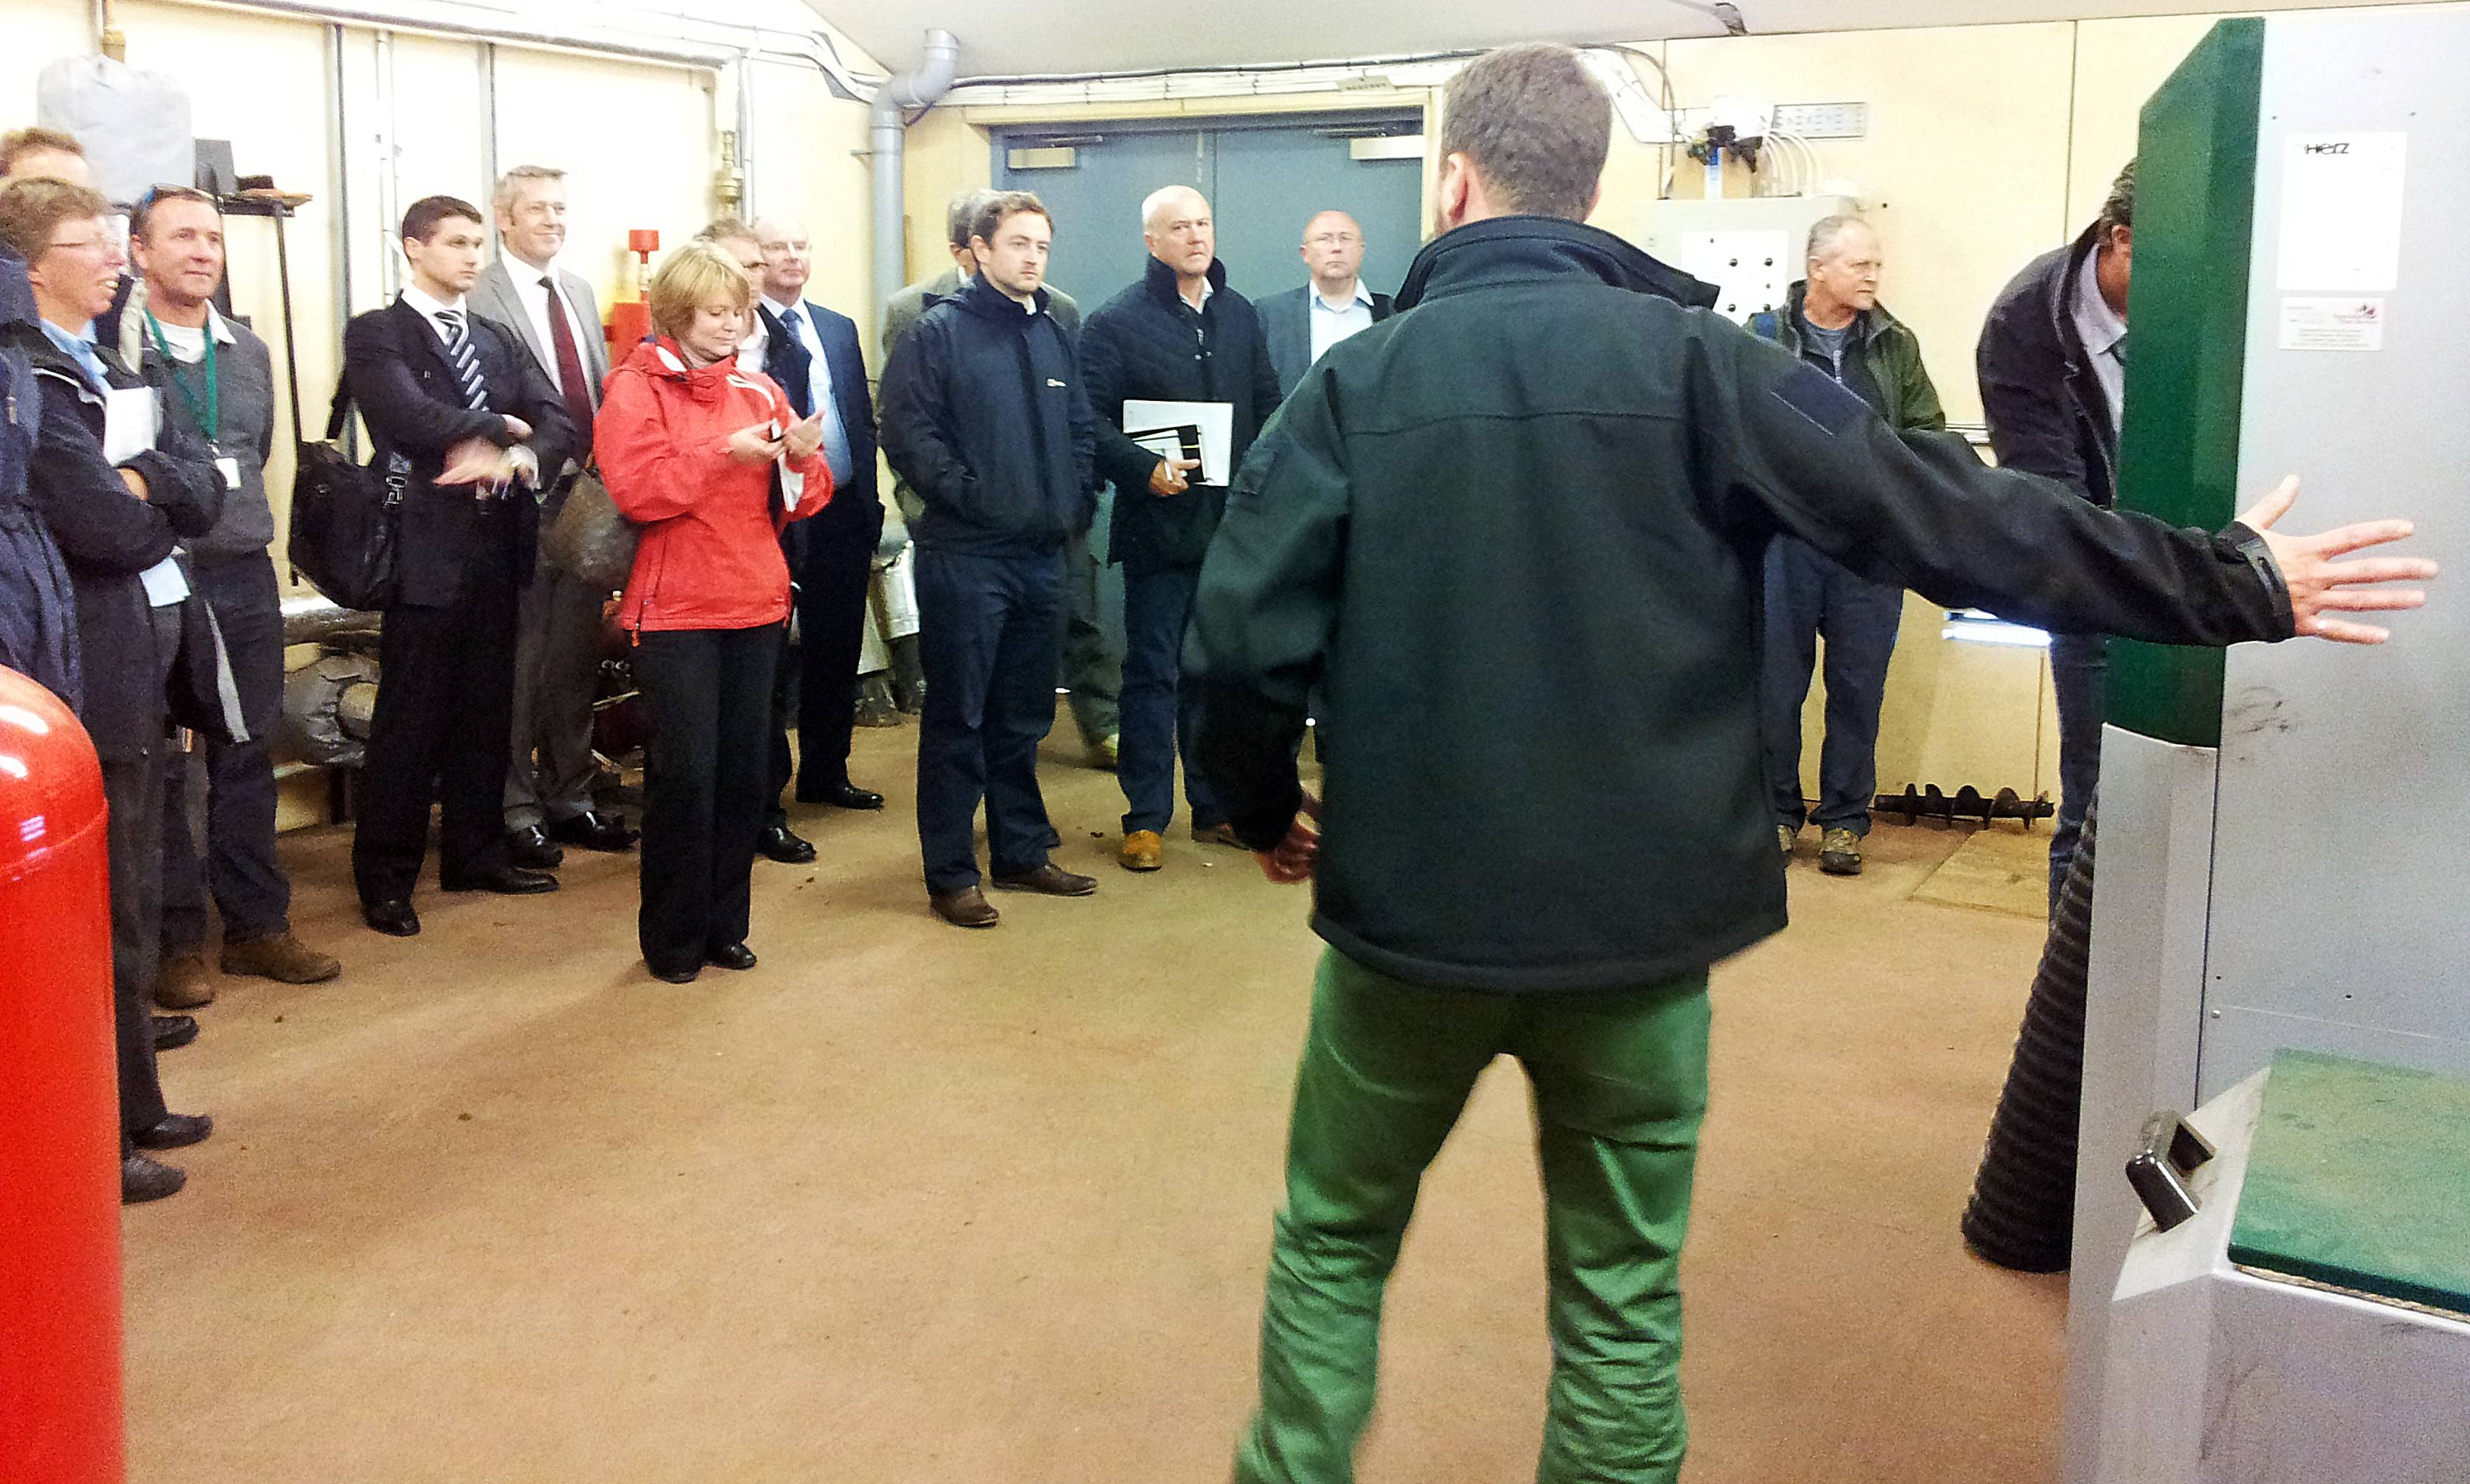 Delegates learn more about the Herz BioMatic biomass boiler in situ